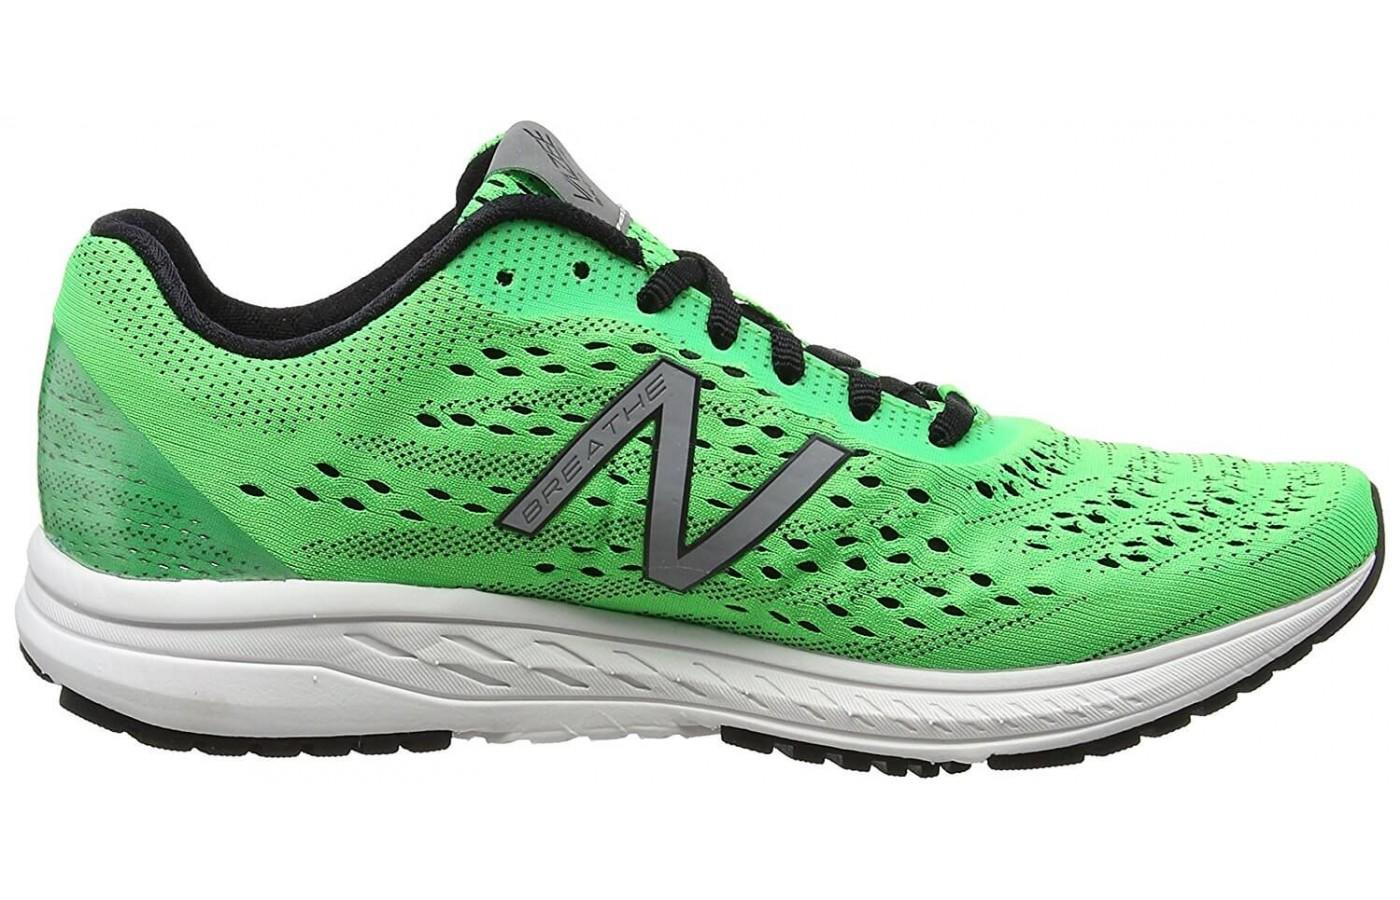 The upper has been redesigned to improve breathability and fit.